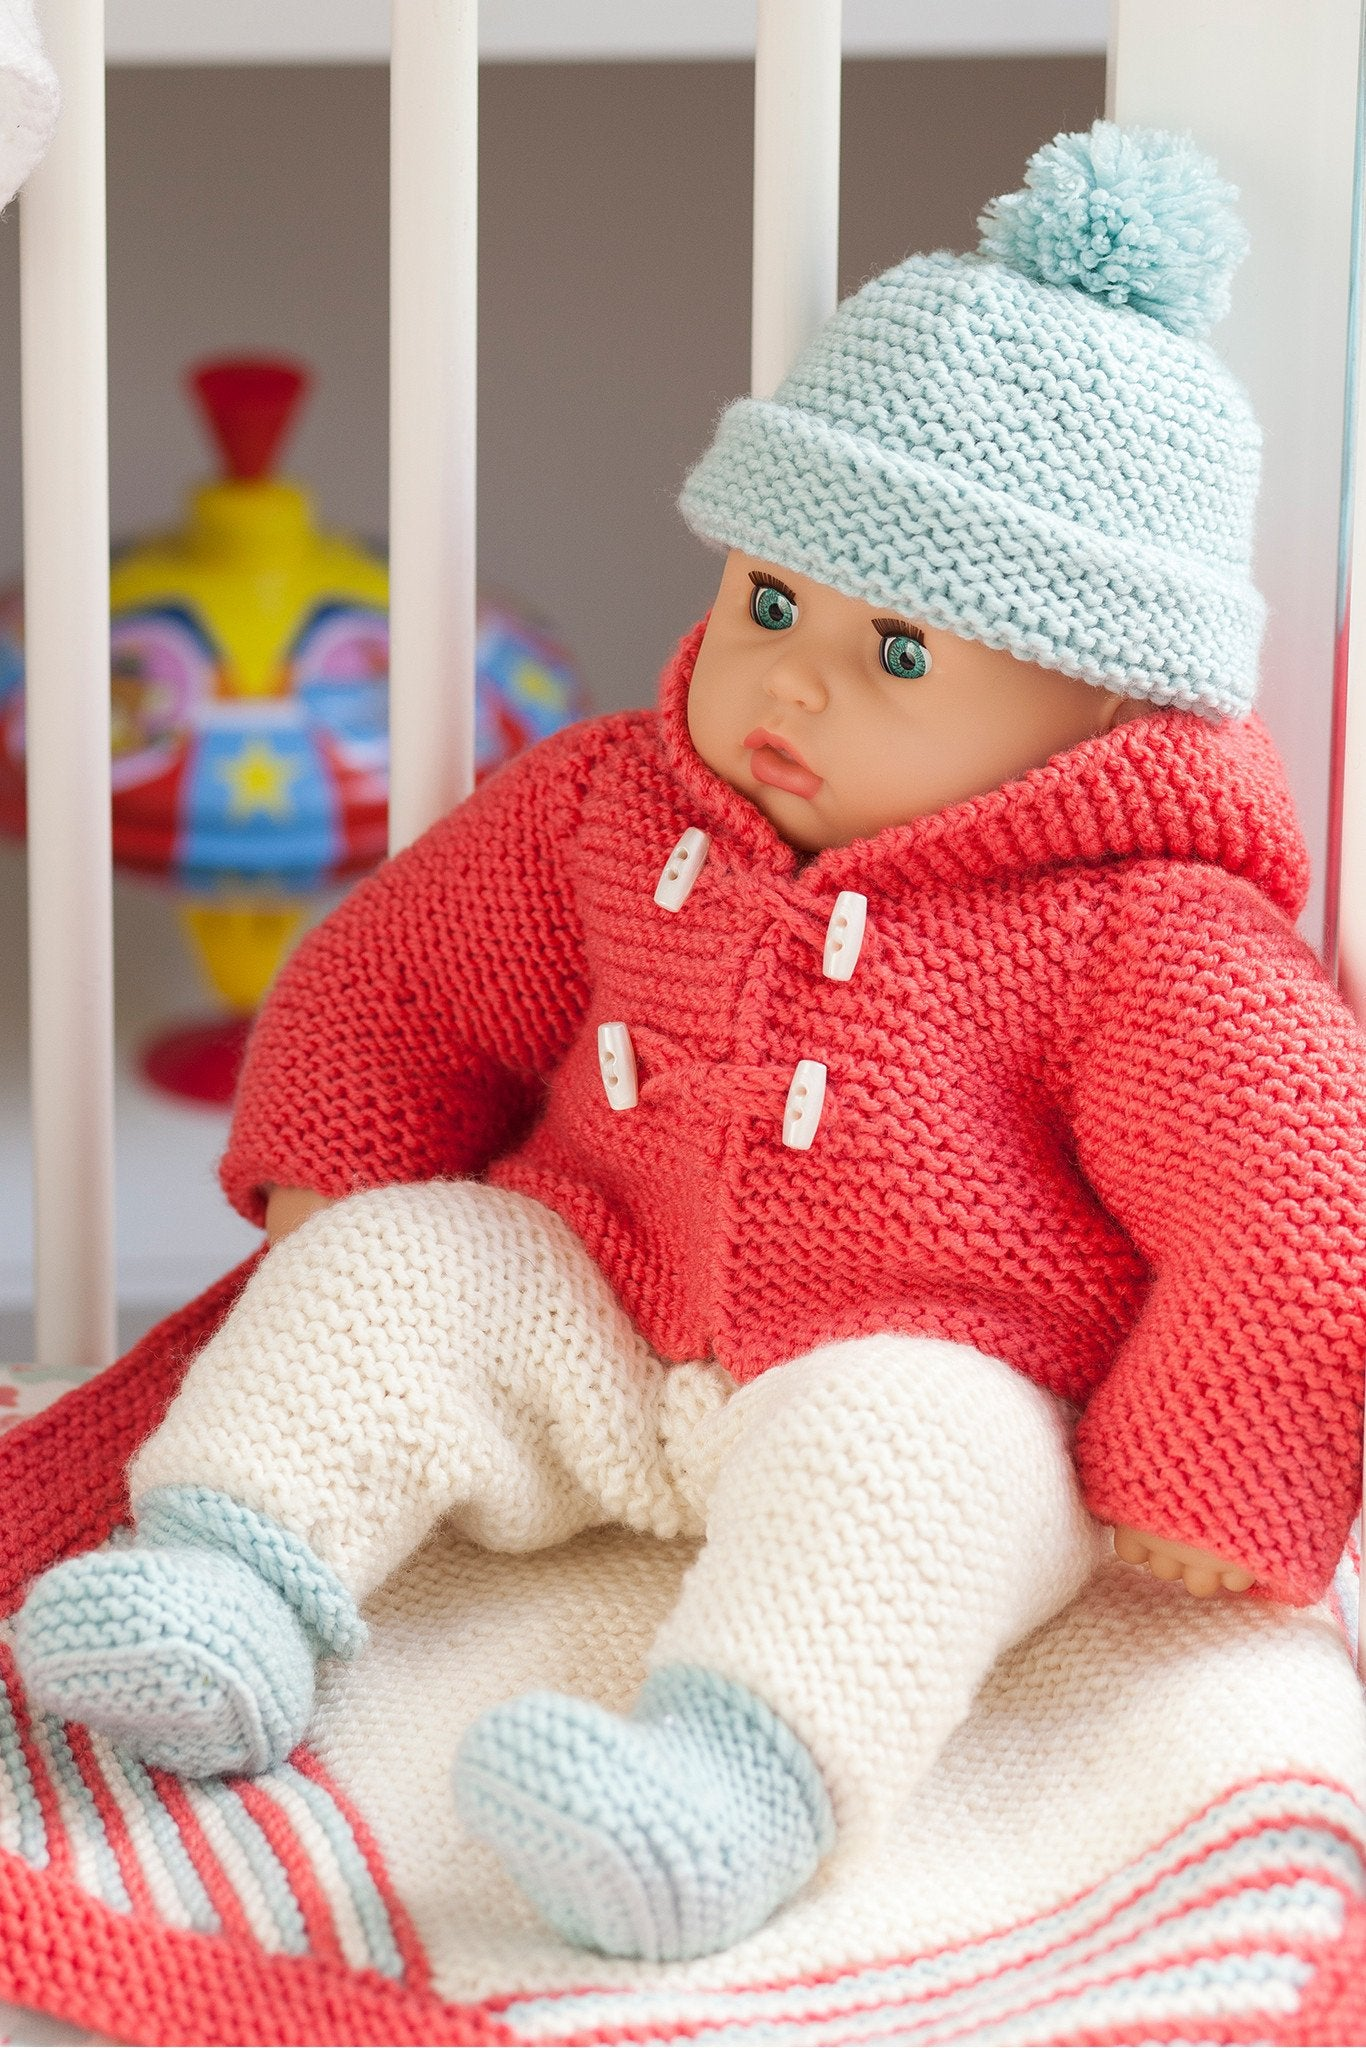 Baby Doll Blanket Knit Pattern : Baby Doll Jacket, Accessories And Blanket Set Knitting Pattern   The Knitting...